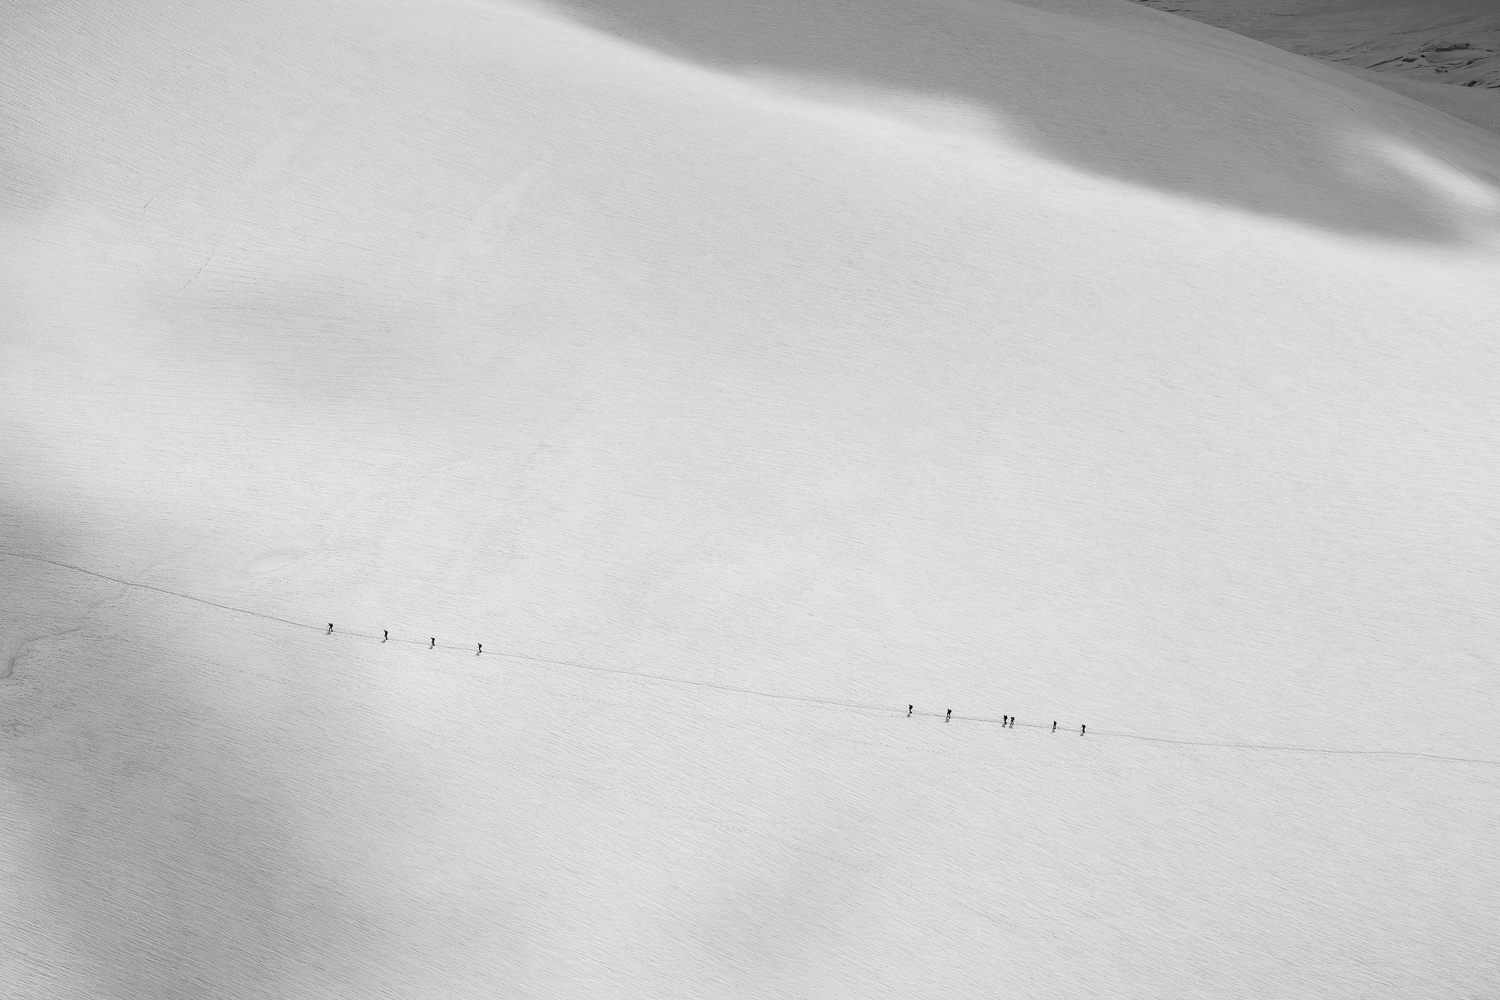 Two groups walking across the Col Du Midi.  Canon 6d, 24-70mm F4L IS @ 70mm, 1/500s, f/11, ISO 100.